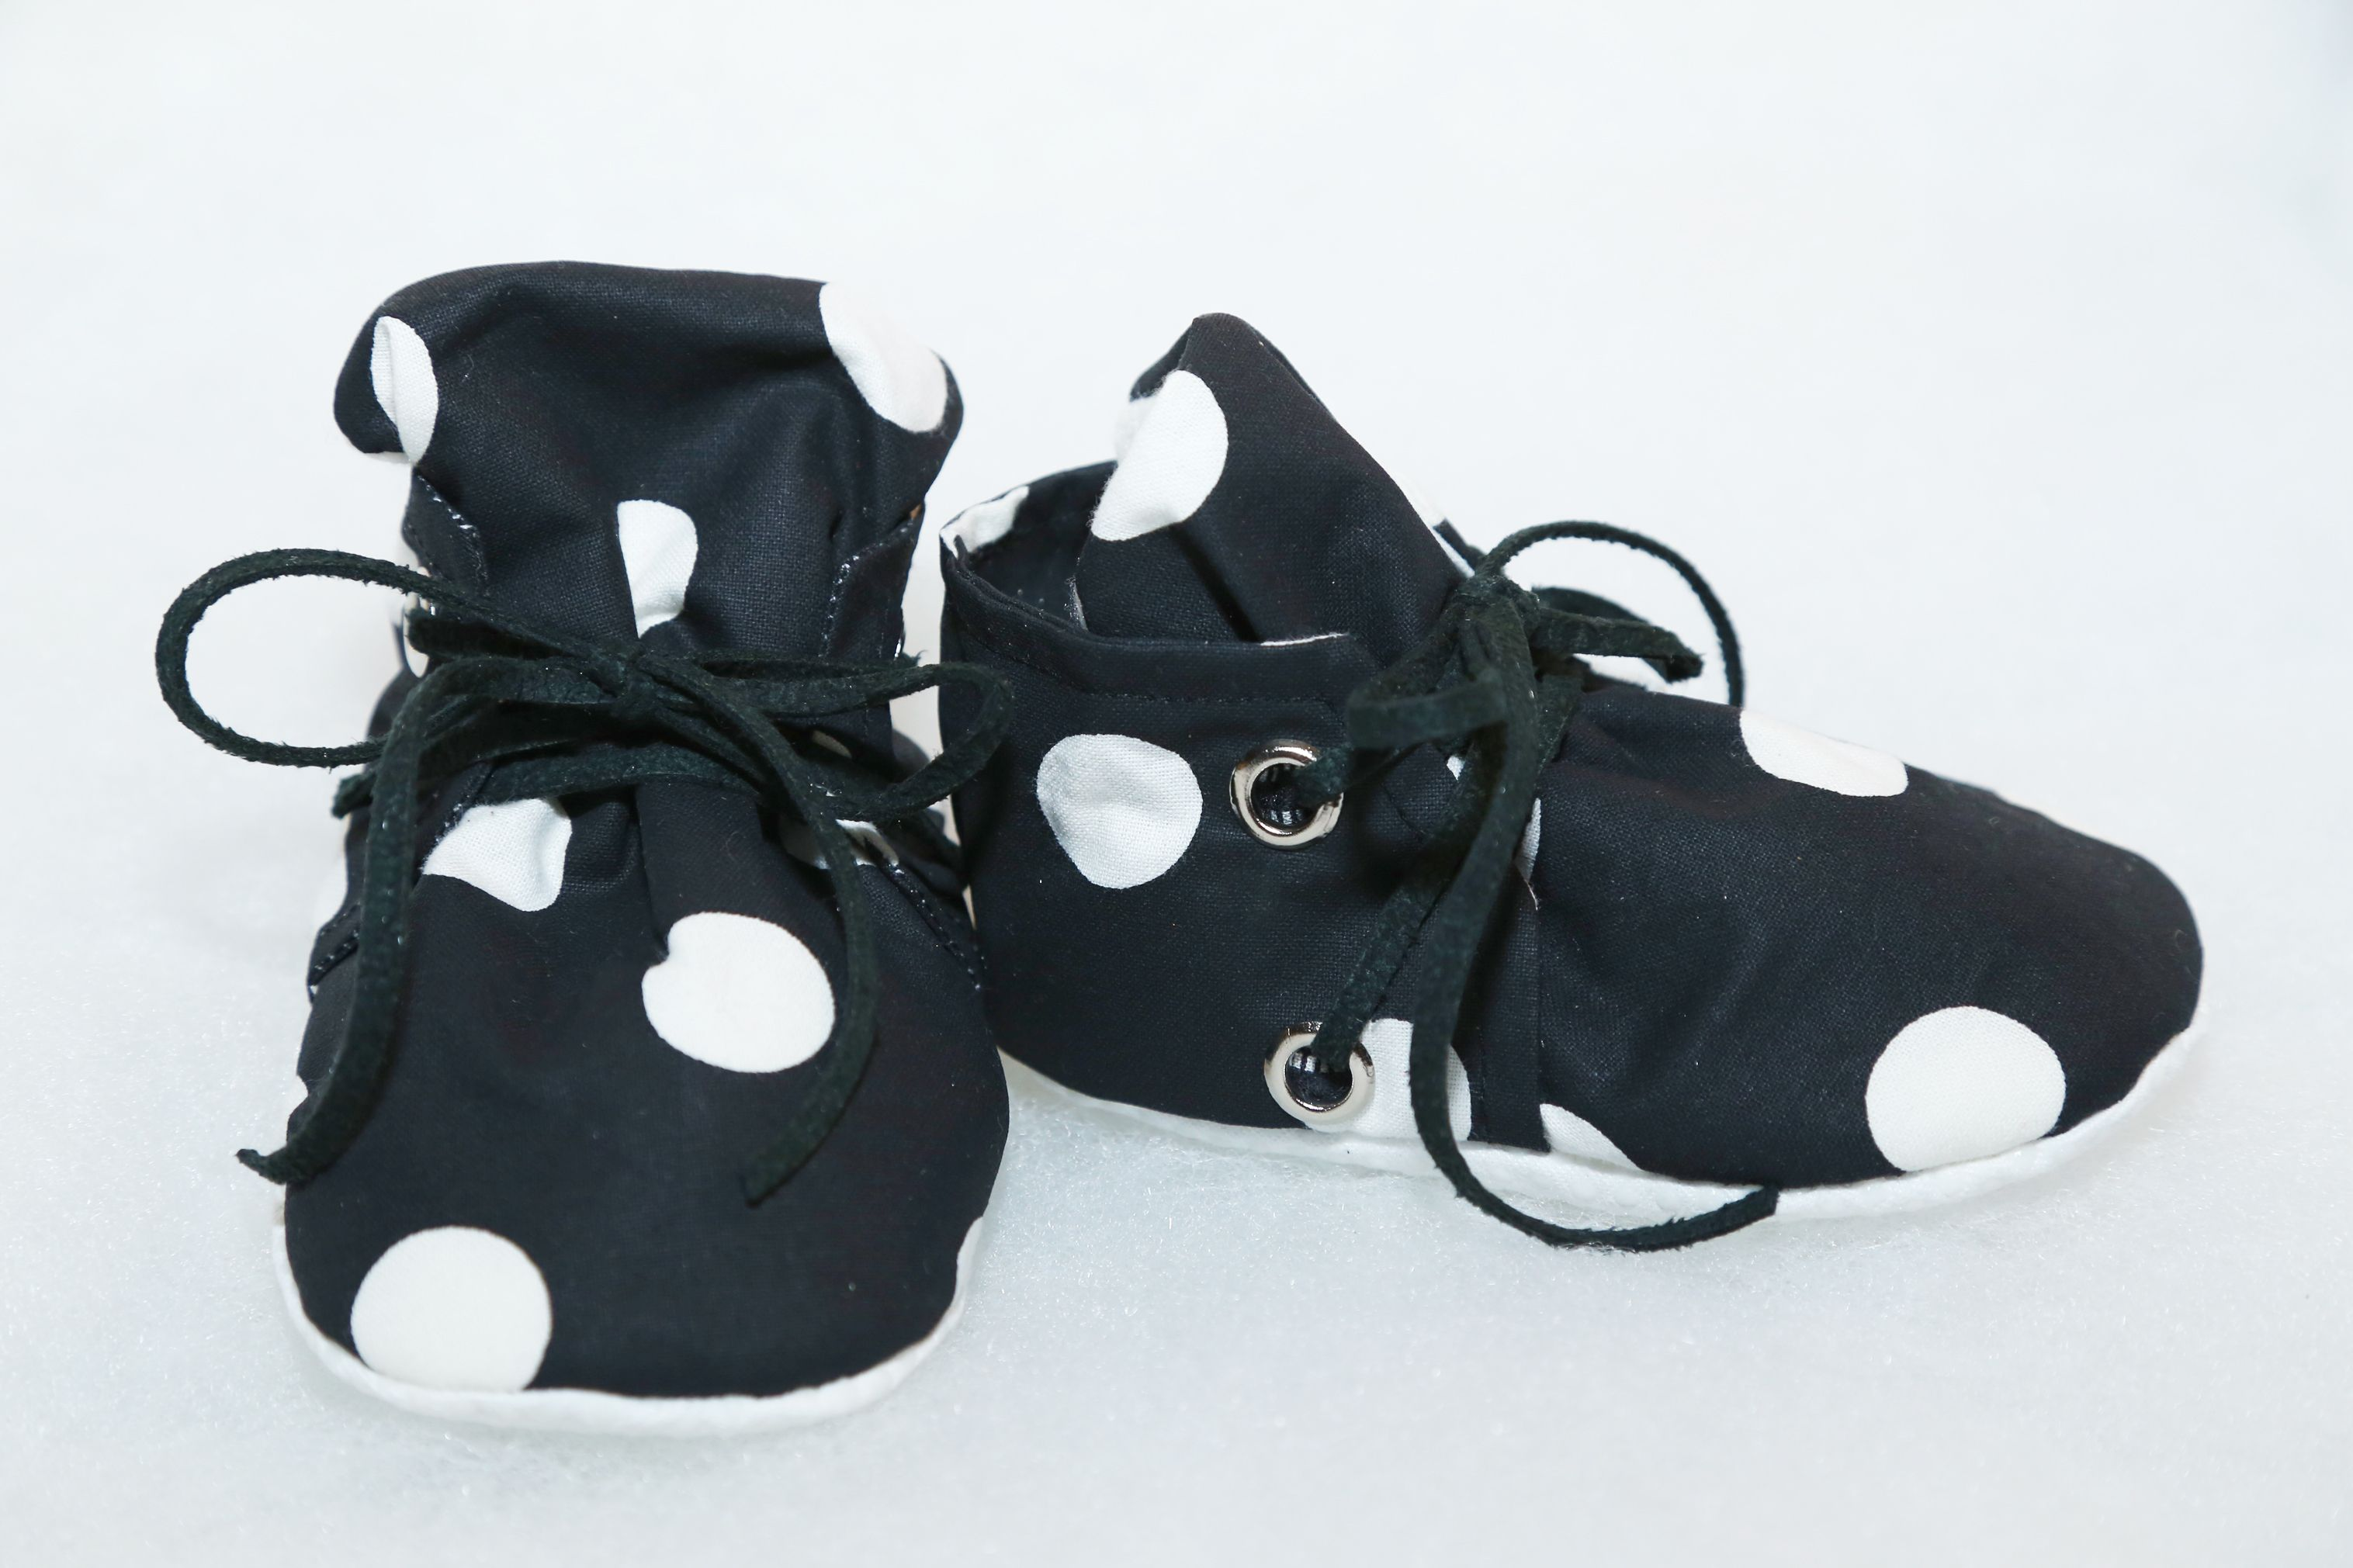 This handmade pair of black/white polka dots baby shoes is great to wear on any occasions. Made with cotton material, each pair of shoes are carefully handcrafted and with a fleece interior that provide a soft snug fit and comfort for your child with extra padding and a non-slip sole. All products are handmade and size may vary with each order. Please allow 7-10 business days for product to be shipped. DISCLAIMER: All MyDarling products are made in a pet frie...